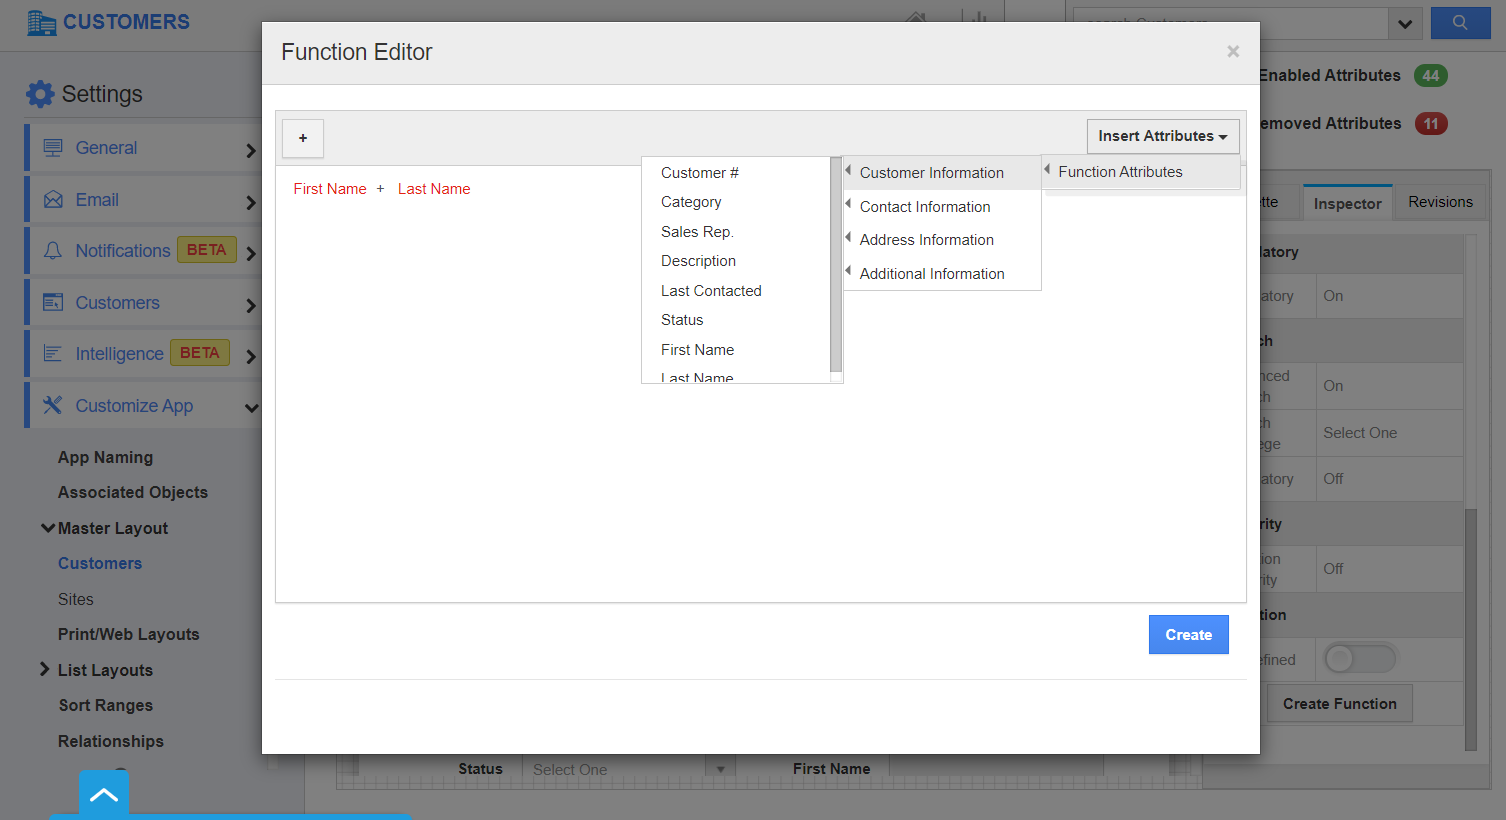 Function Editor In Customer Name Attribute